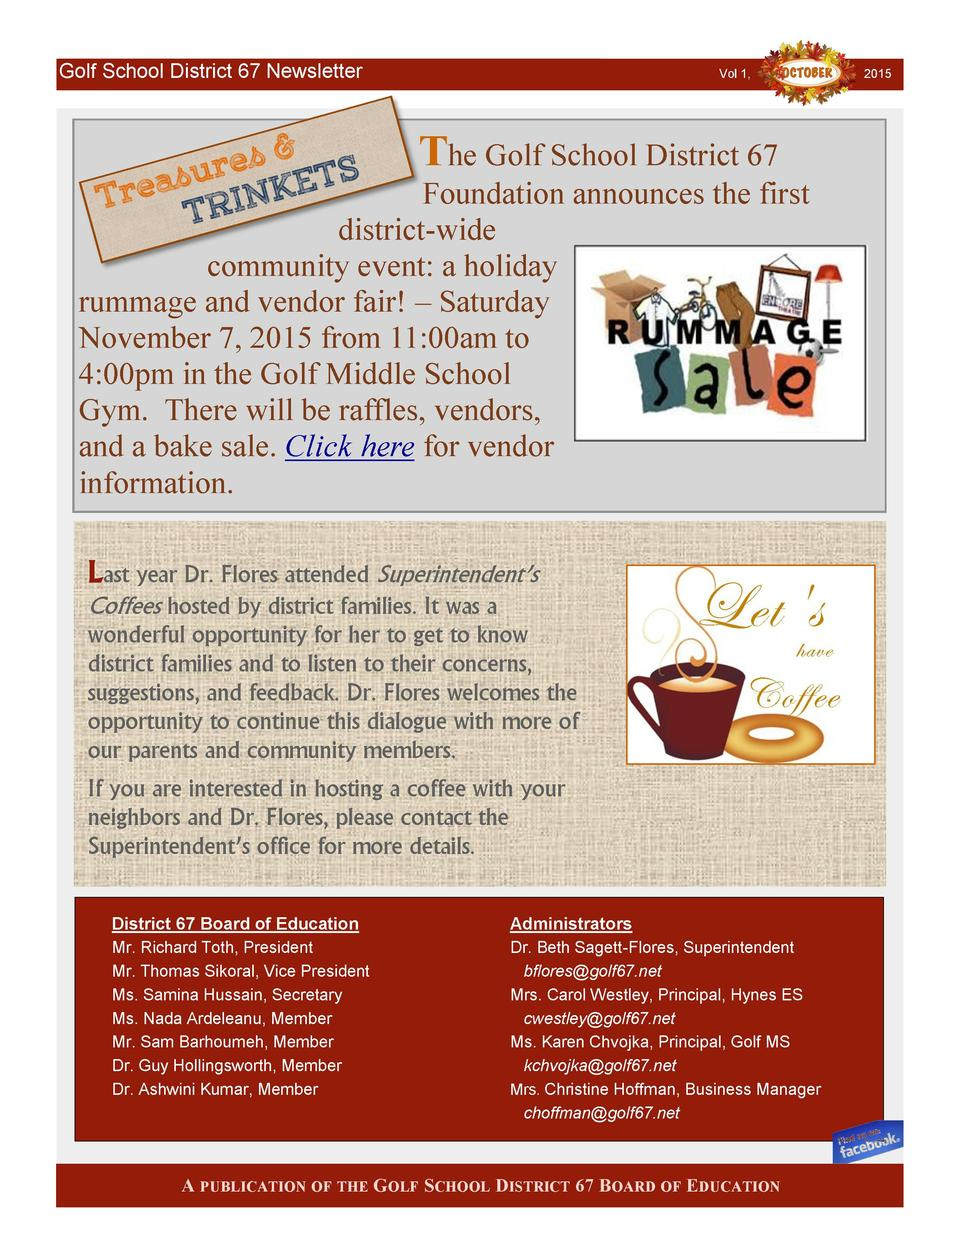 Golf School District 67 Newsletter  Vol 1,  The Golf School District 67 Foundation announces the first district-wide commu...